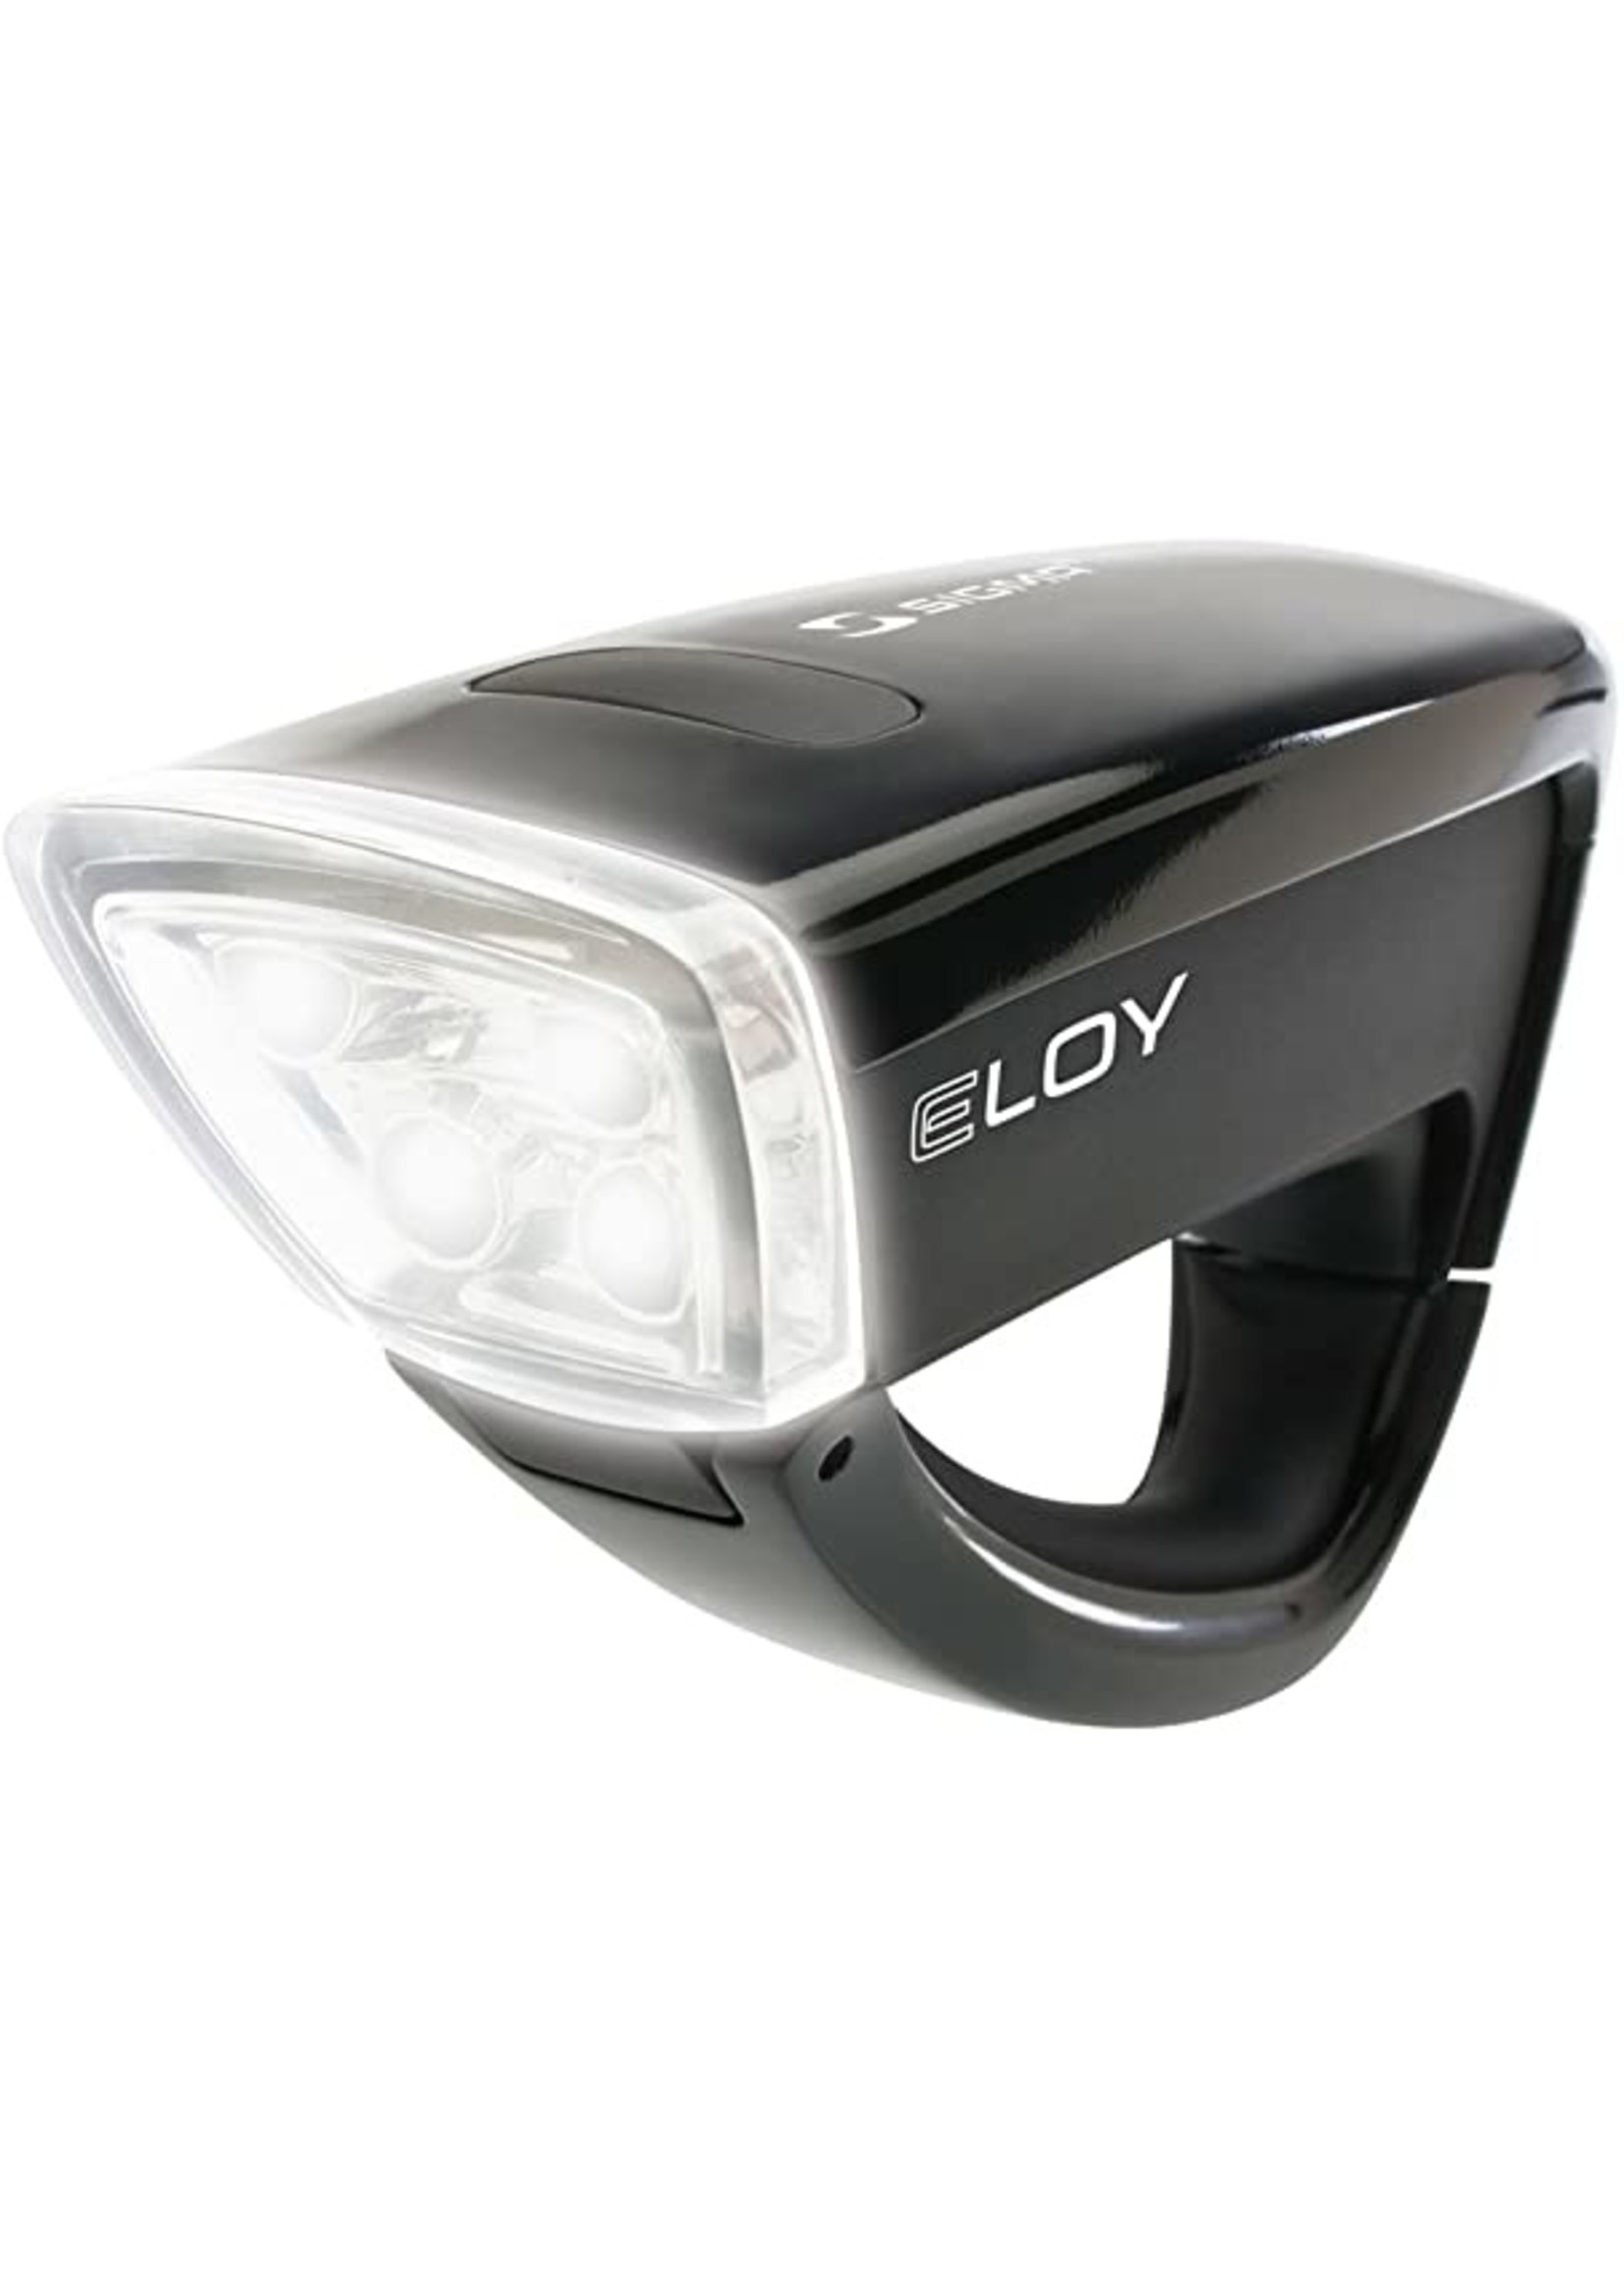 SIGMA SIGMA ELOY FRONT LIGHT